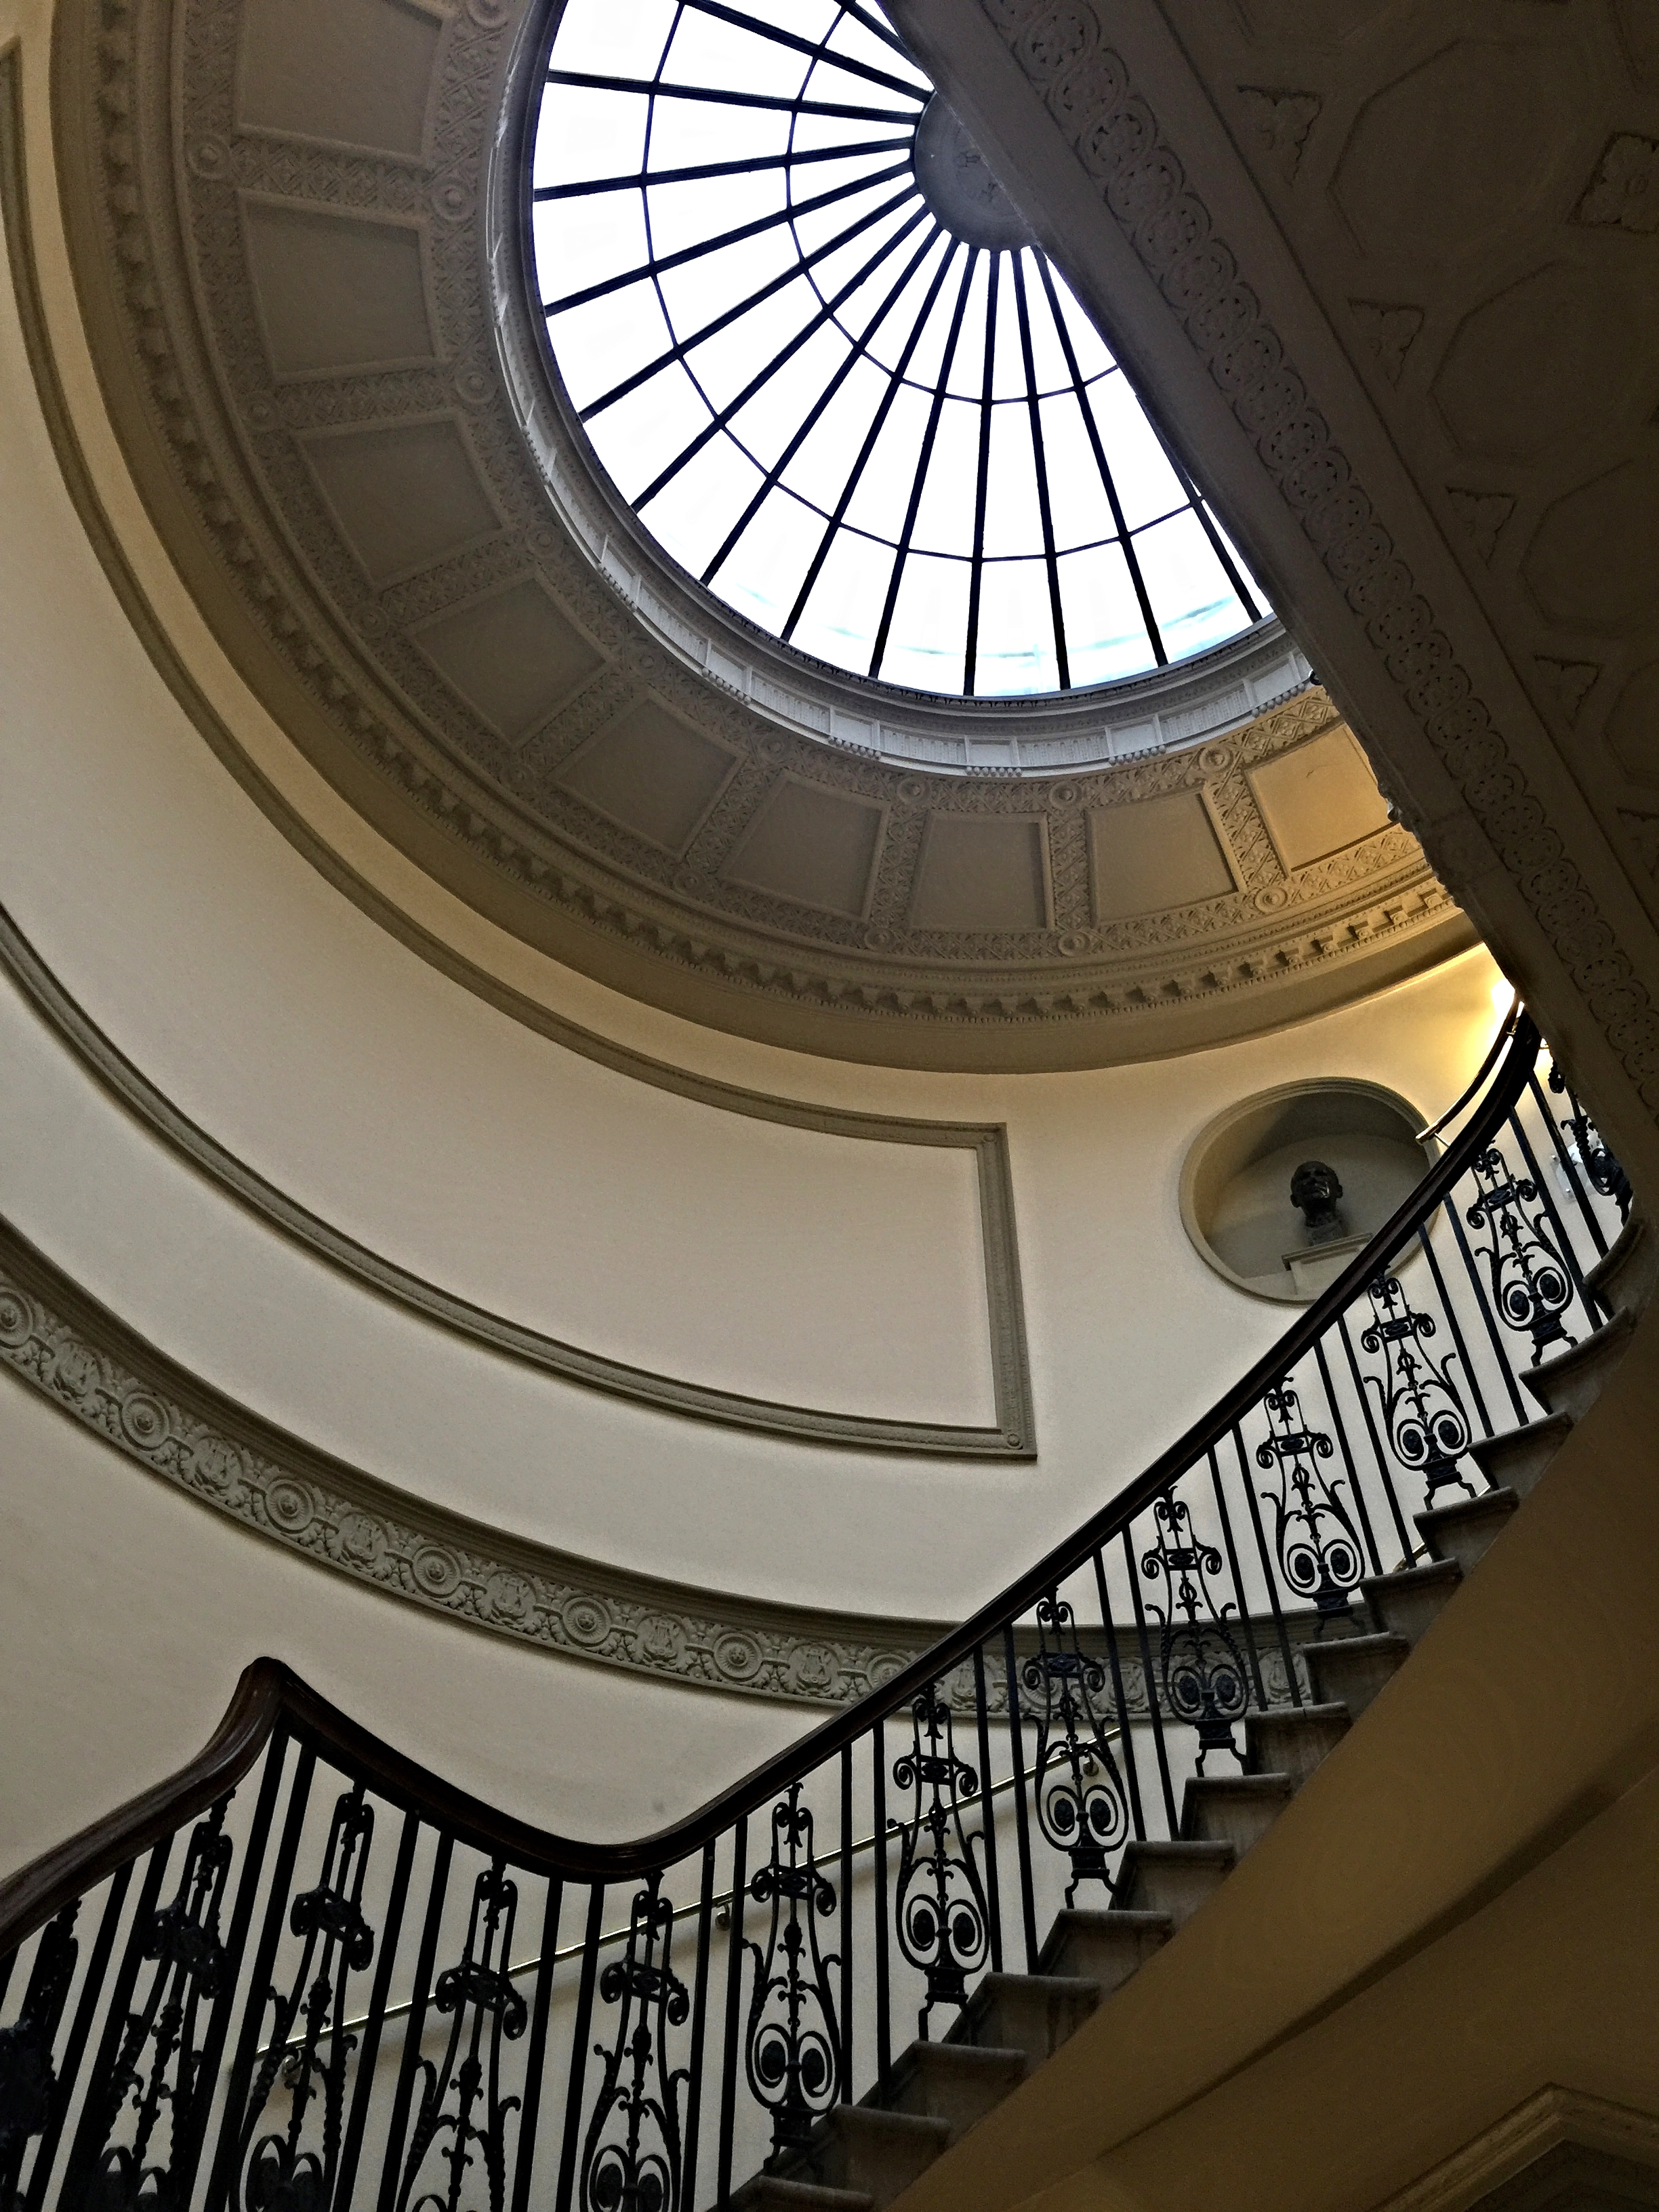 The stairway leading up to the many galleries of the Courtauld provides an intimate encounter with the art on display.